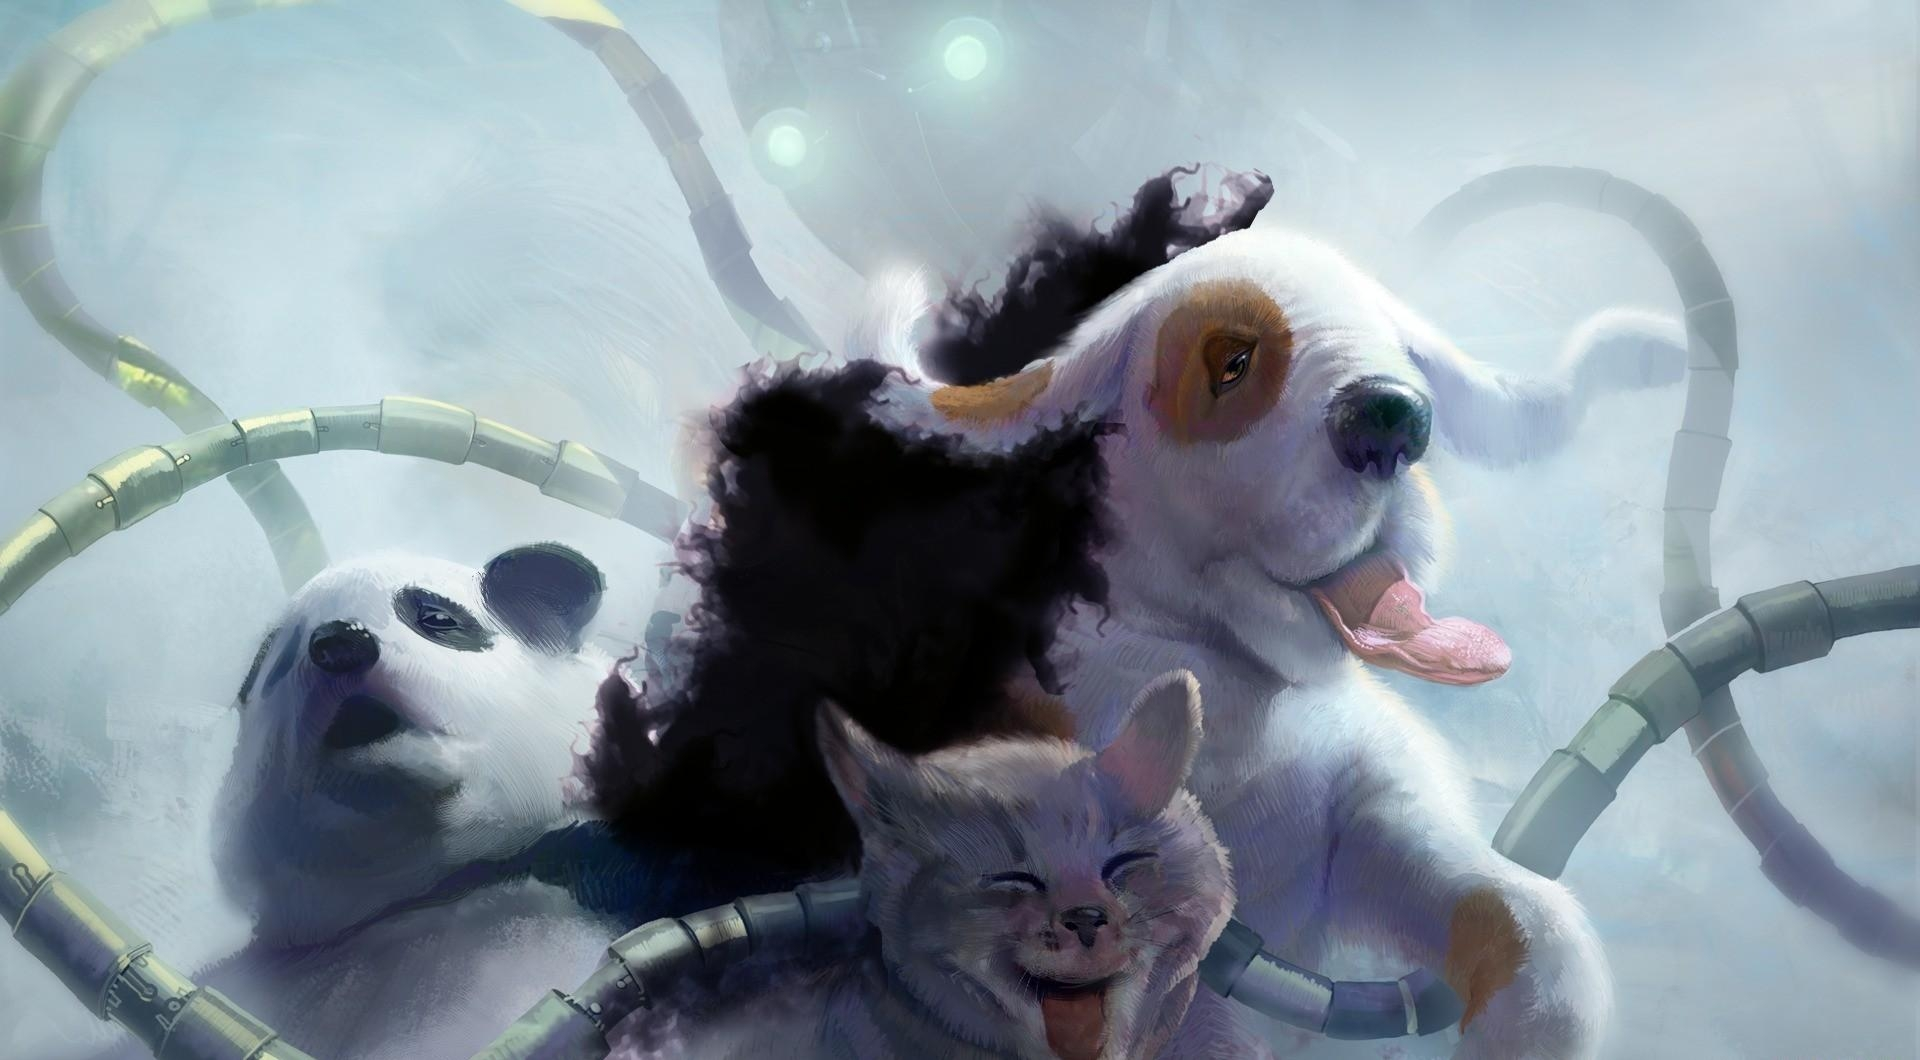 82777 download wallpaper Fantasy, Panda, Cat, Dog, Tentacles, Robot, Octopus screensavers and pictures for free